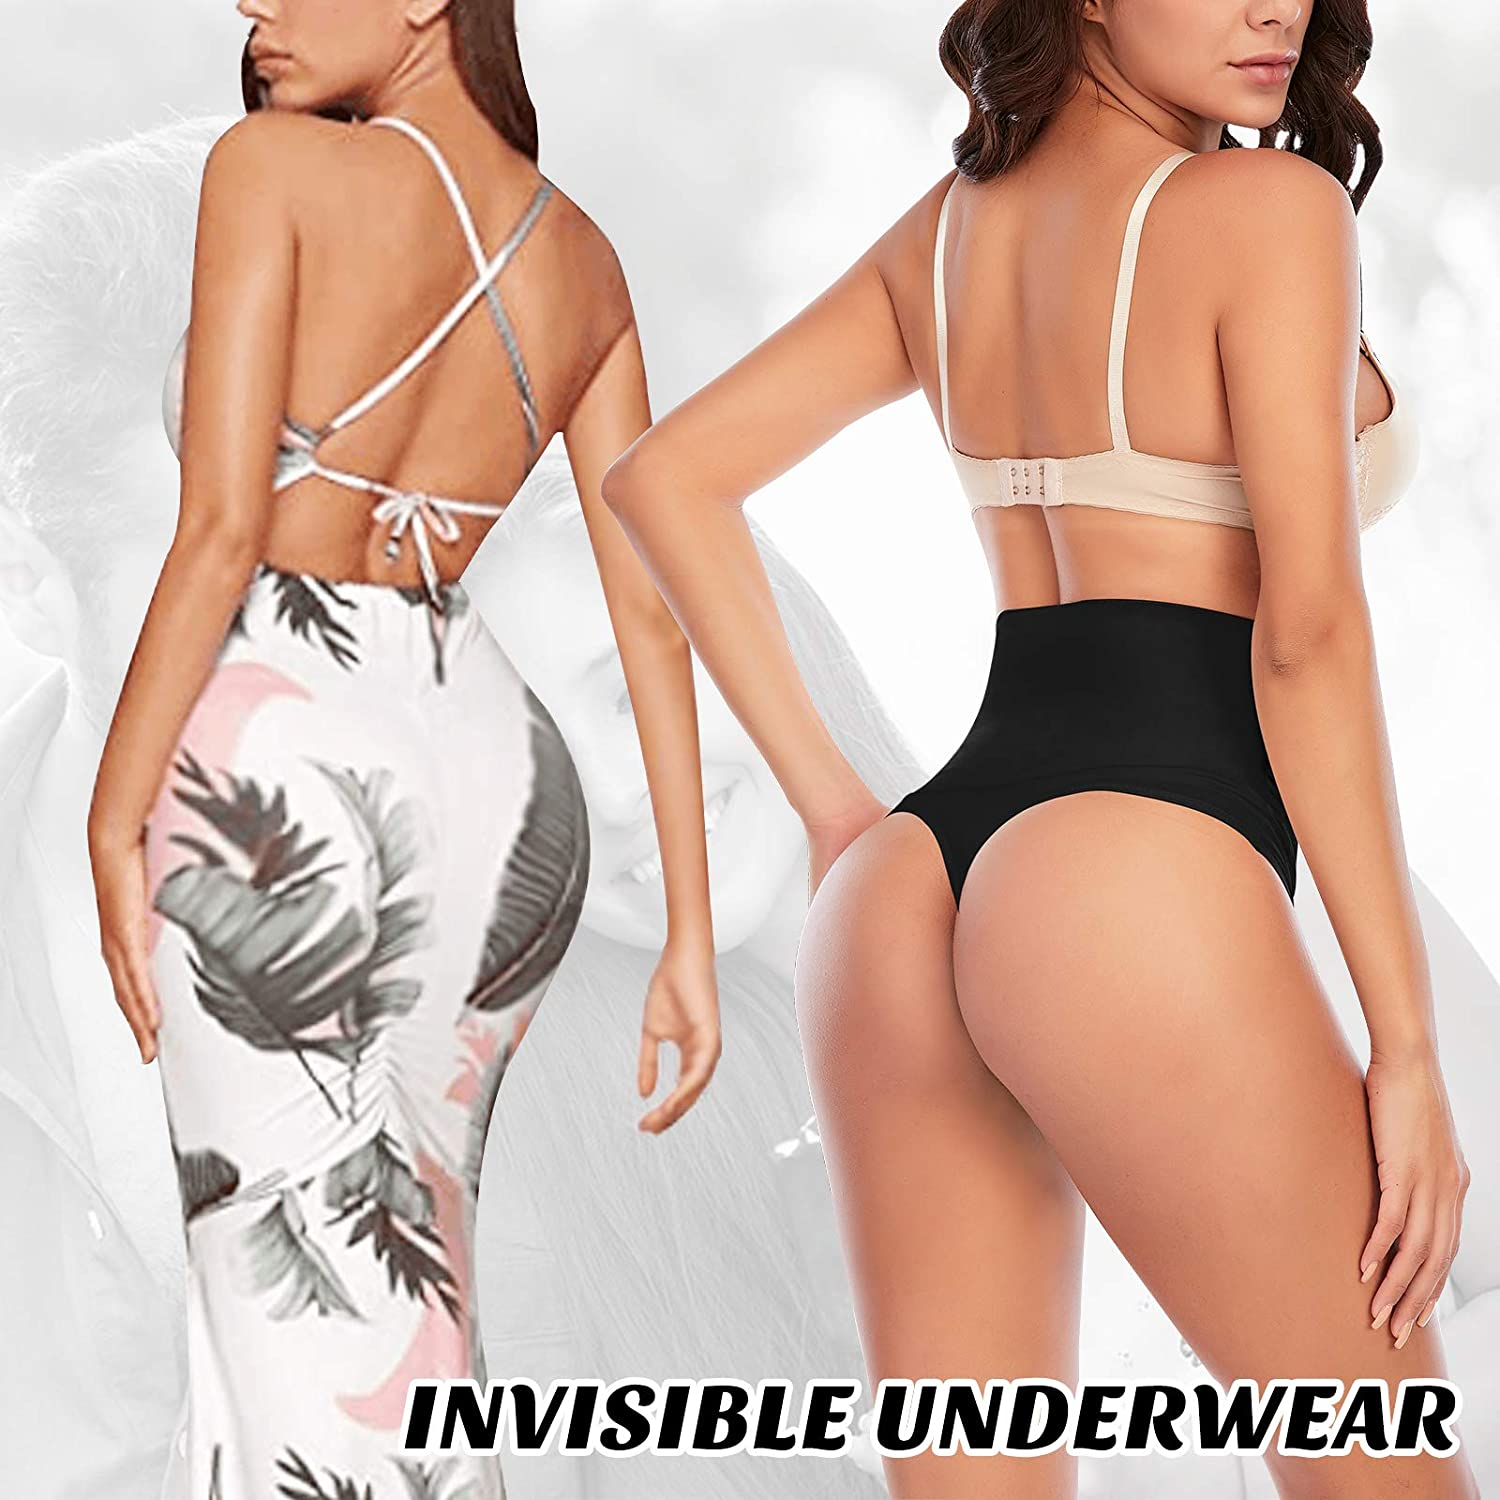 Thong Shapewear for Women Tummy Control High Waisted Thongs Underwear Seamless Slimming Body Shaper Panty